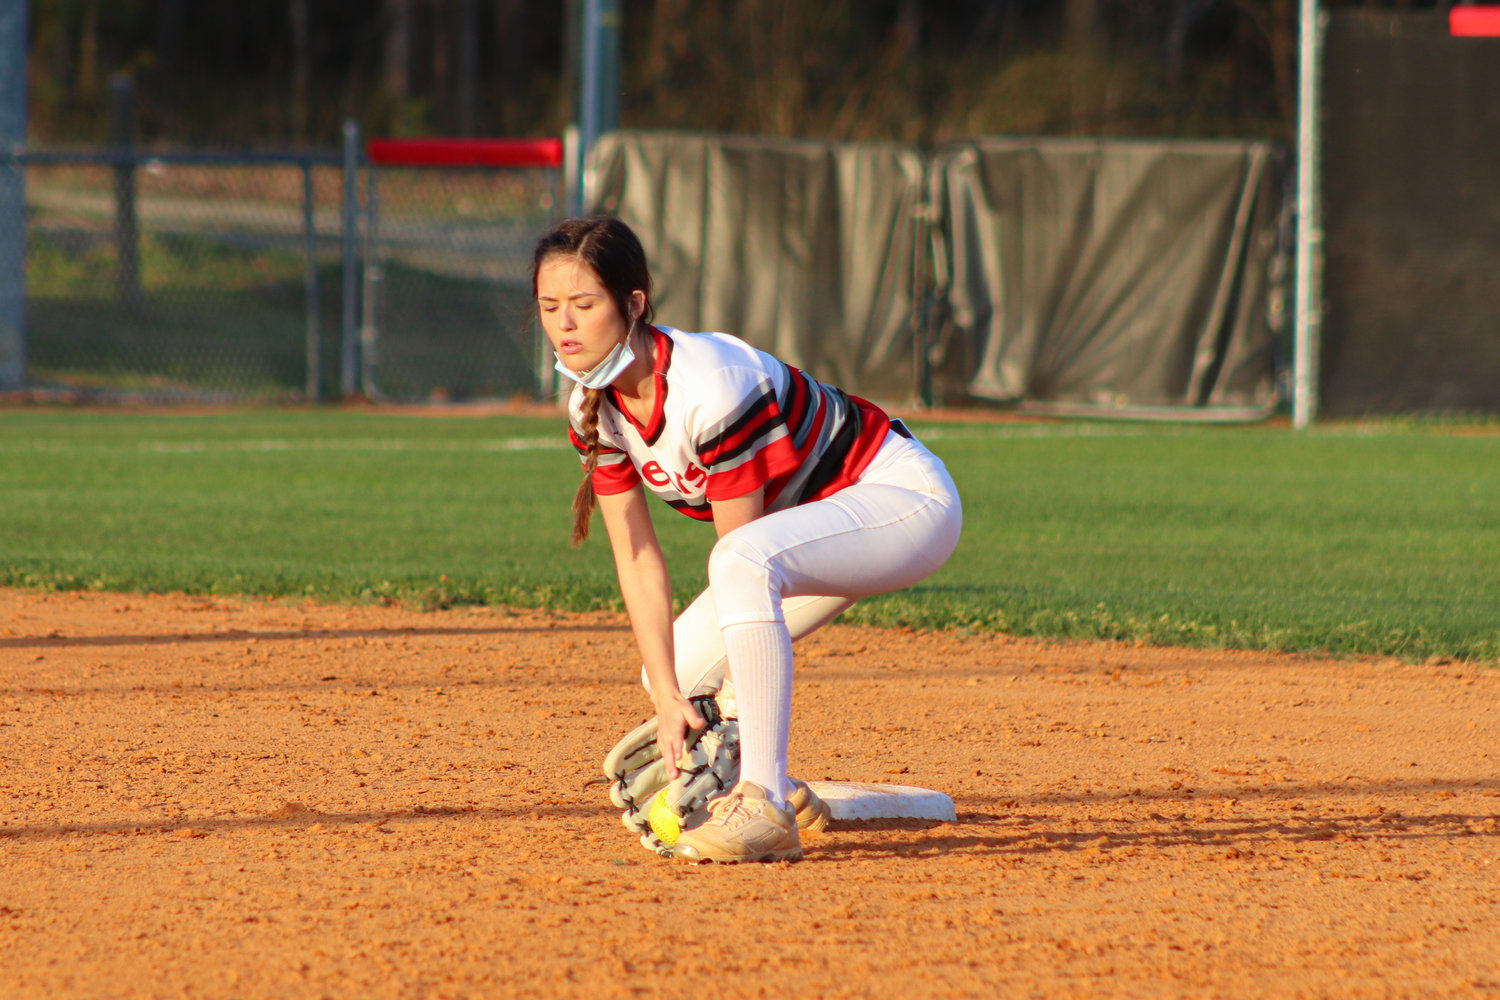 Chatham Central senior Lindsay Polston fields a ground ball in her team's 12-0 victory over North Rowan on March 30. Polston is one of three seniors on the Bears' roster.